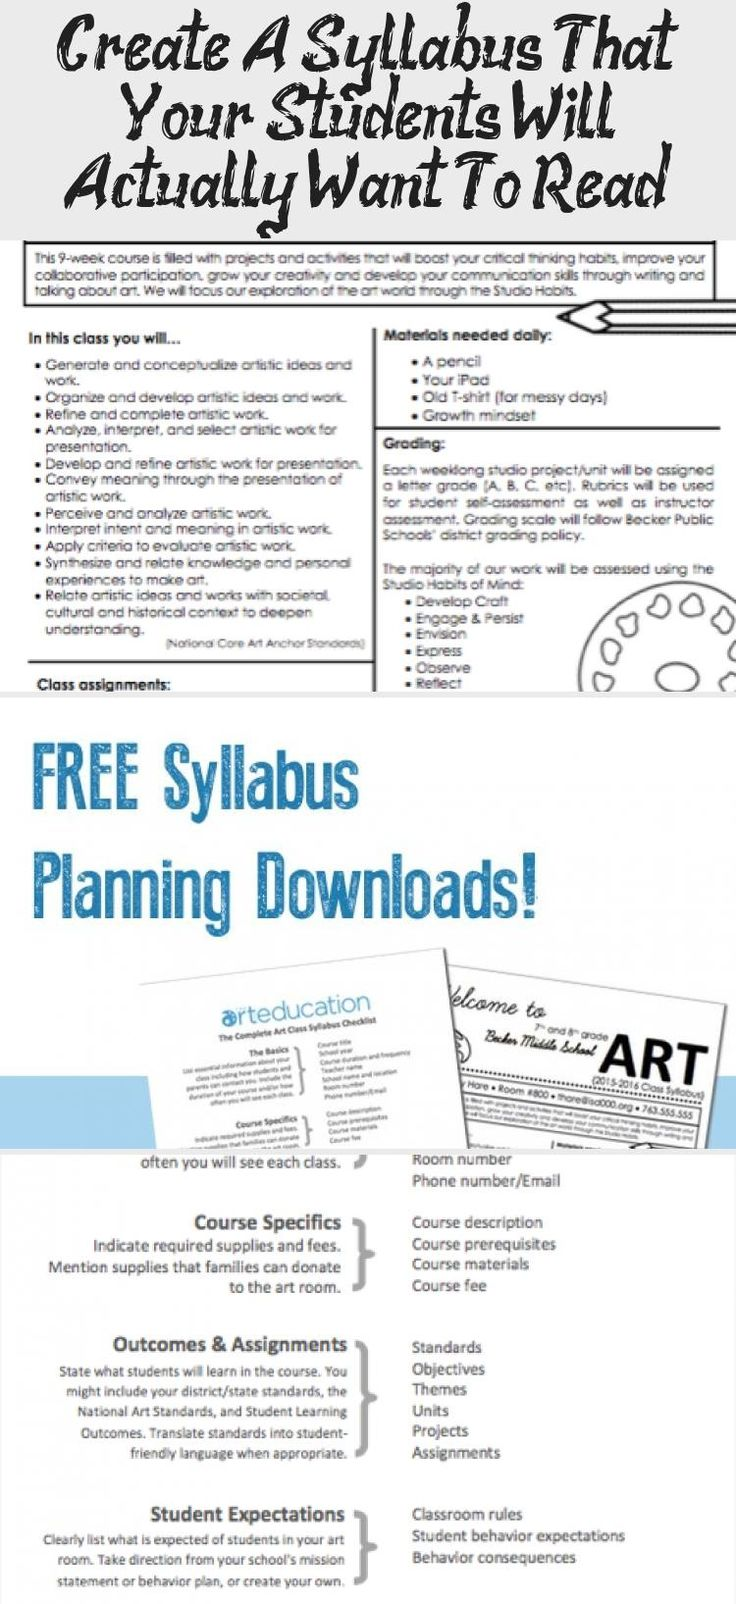 Create A Syllabus That Your Students Will Actually Want To